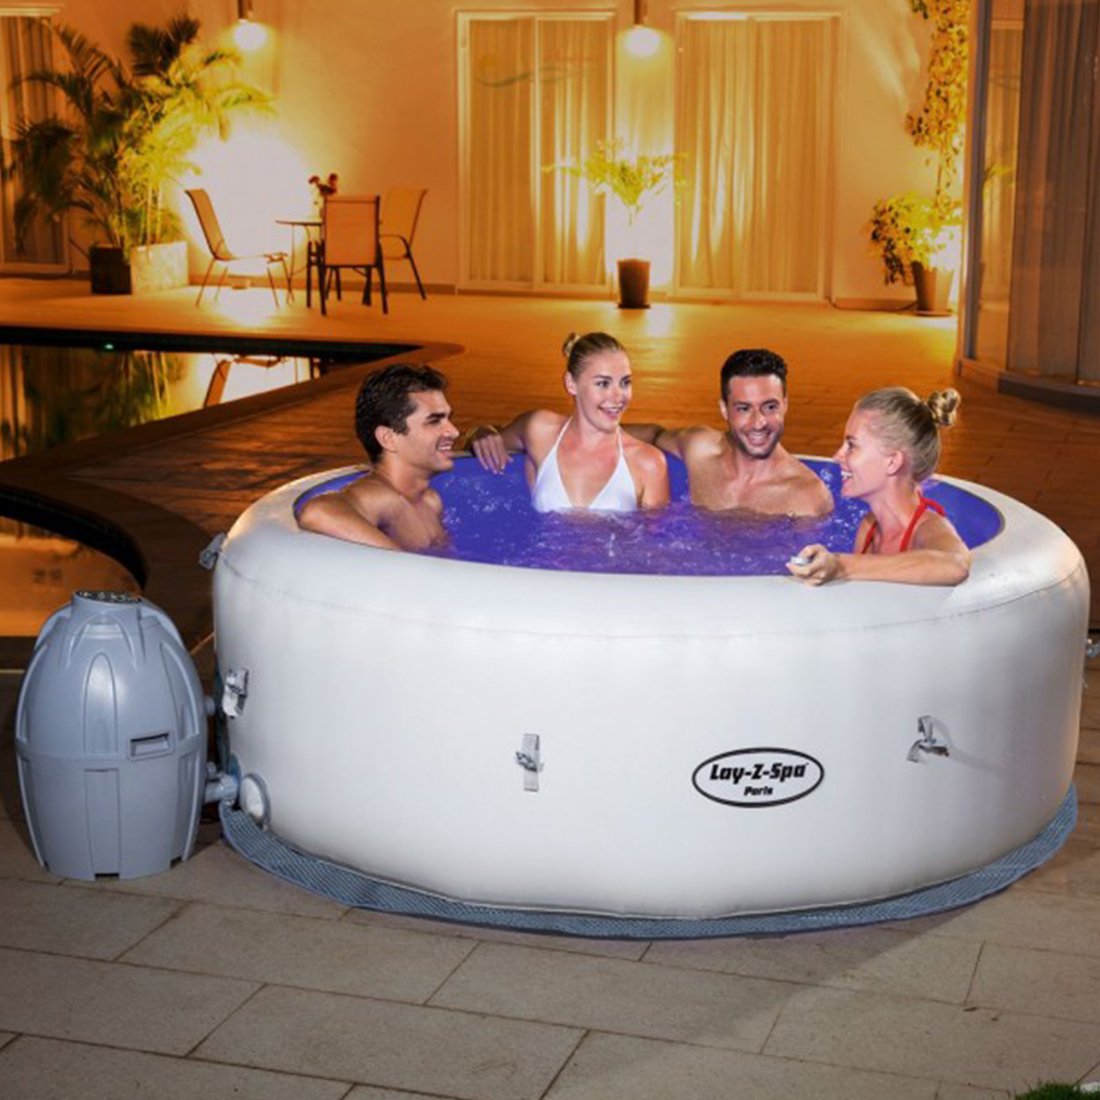 Bestway Lay-Z-Spa PARIS - Heated Hot Tub Spa Massage - Built in LED - 80 Jets - 4 to 6 People